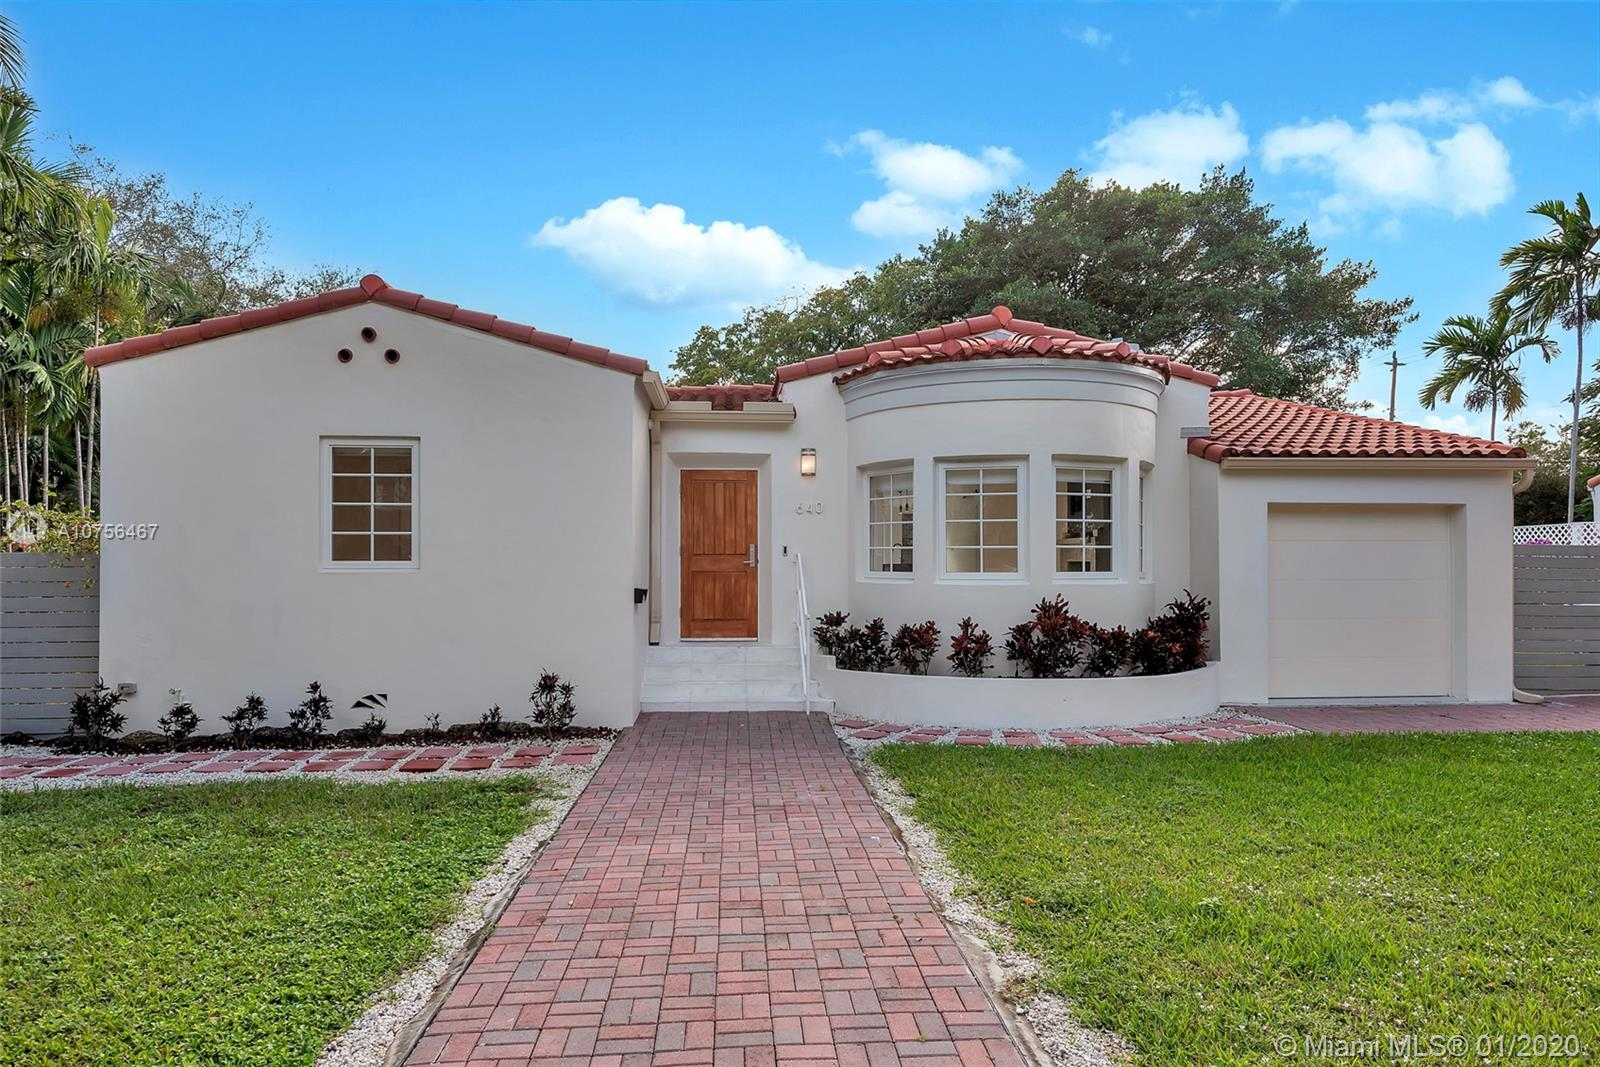 640 69th st- miami-fl-33138-a10756467-Pic01